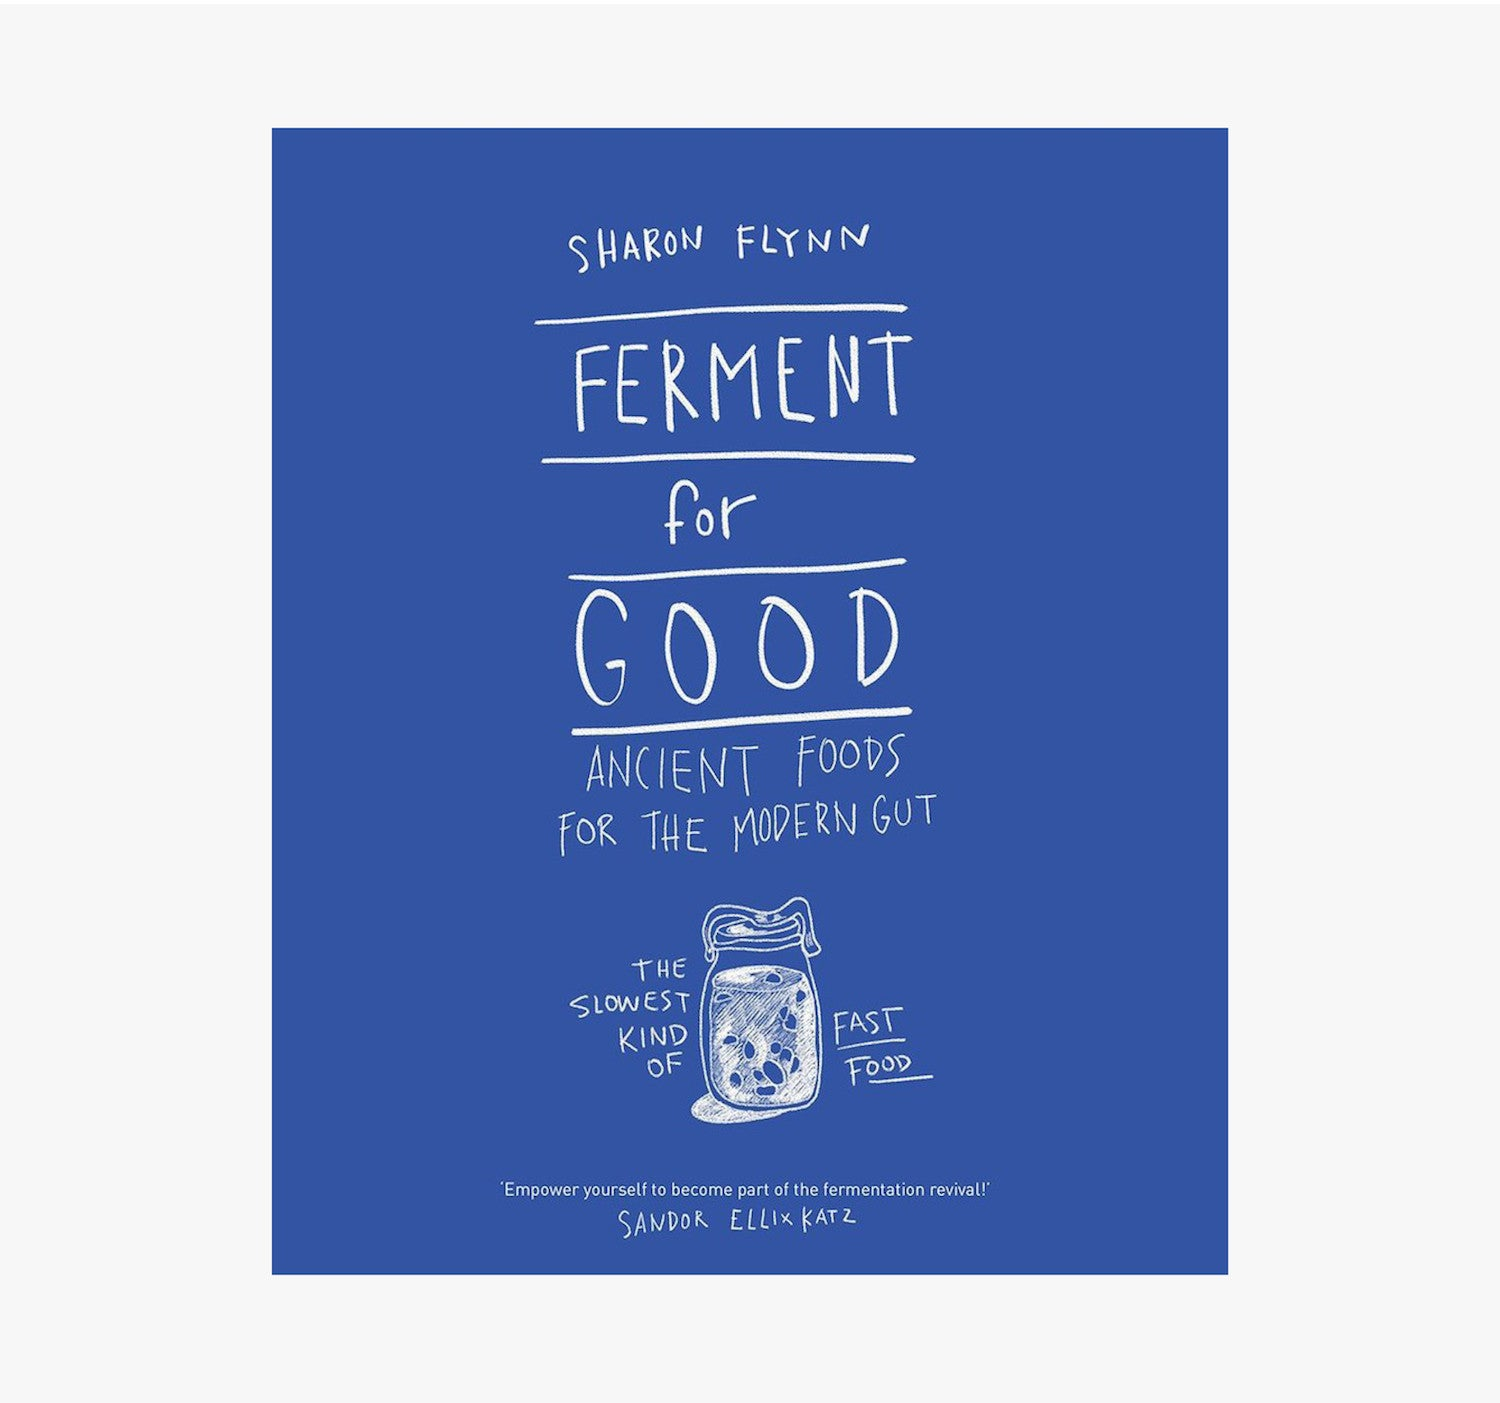 Ferment for Good - Ancient Foods for the Modern Gut